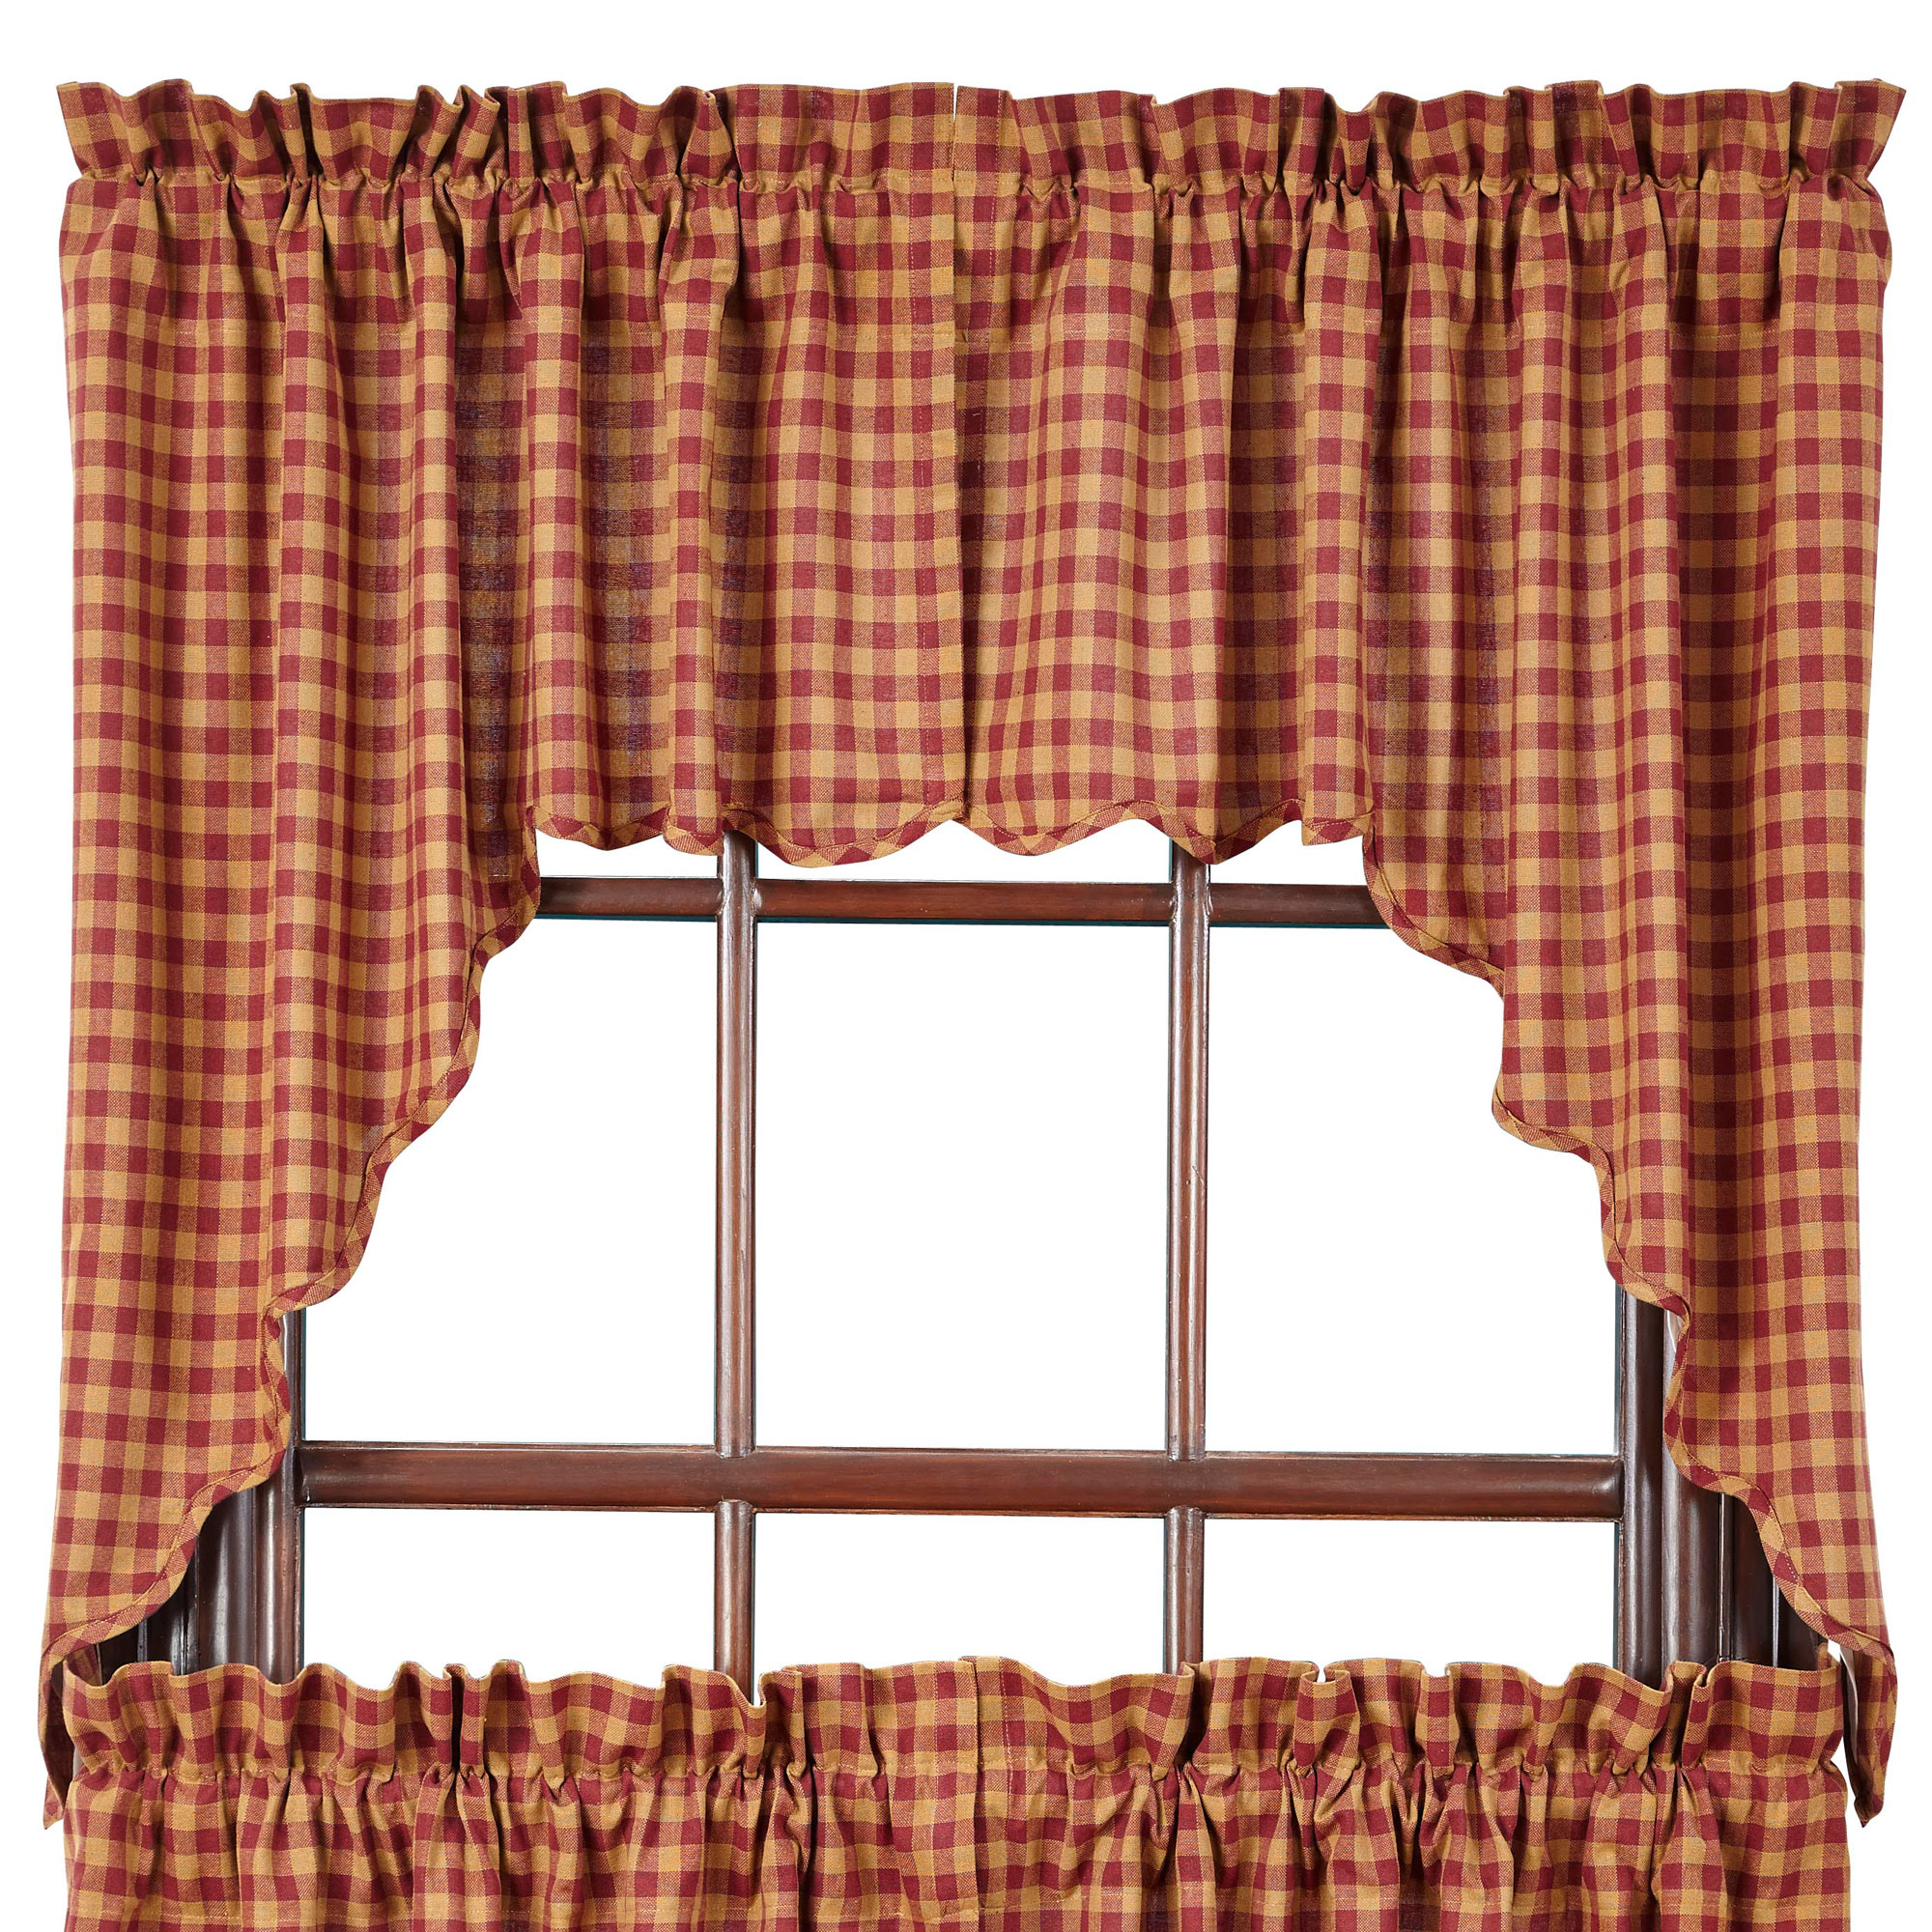 Check Scalloped Country Curtain Swags By Vhc Brands Navy